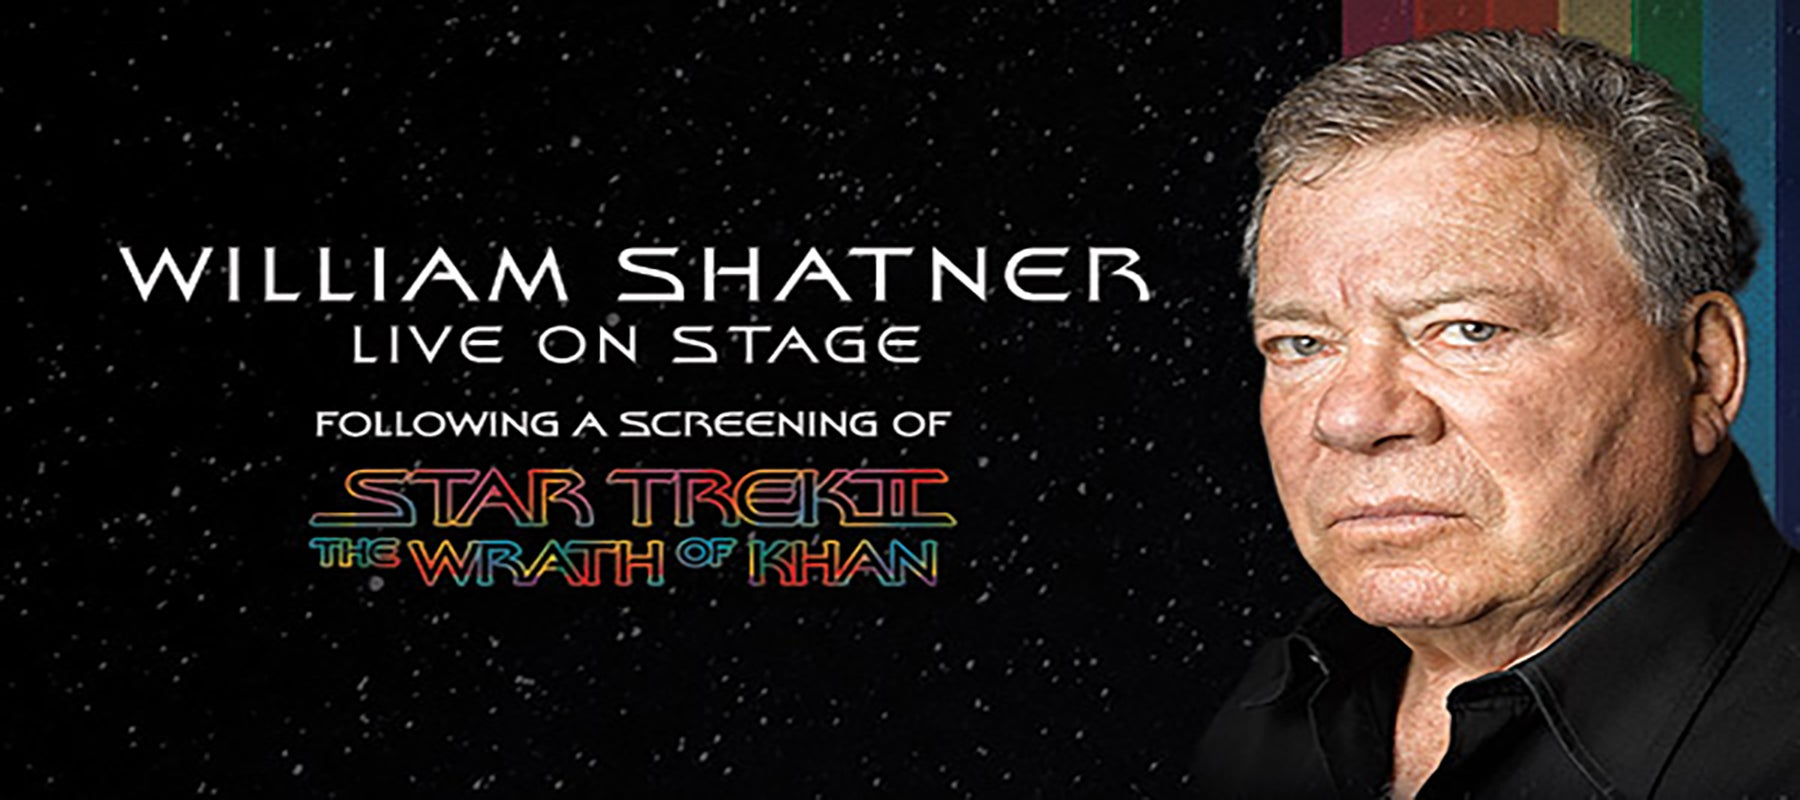 William Shatner & Star Trek II: The Wrath of Khan